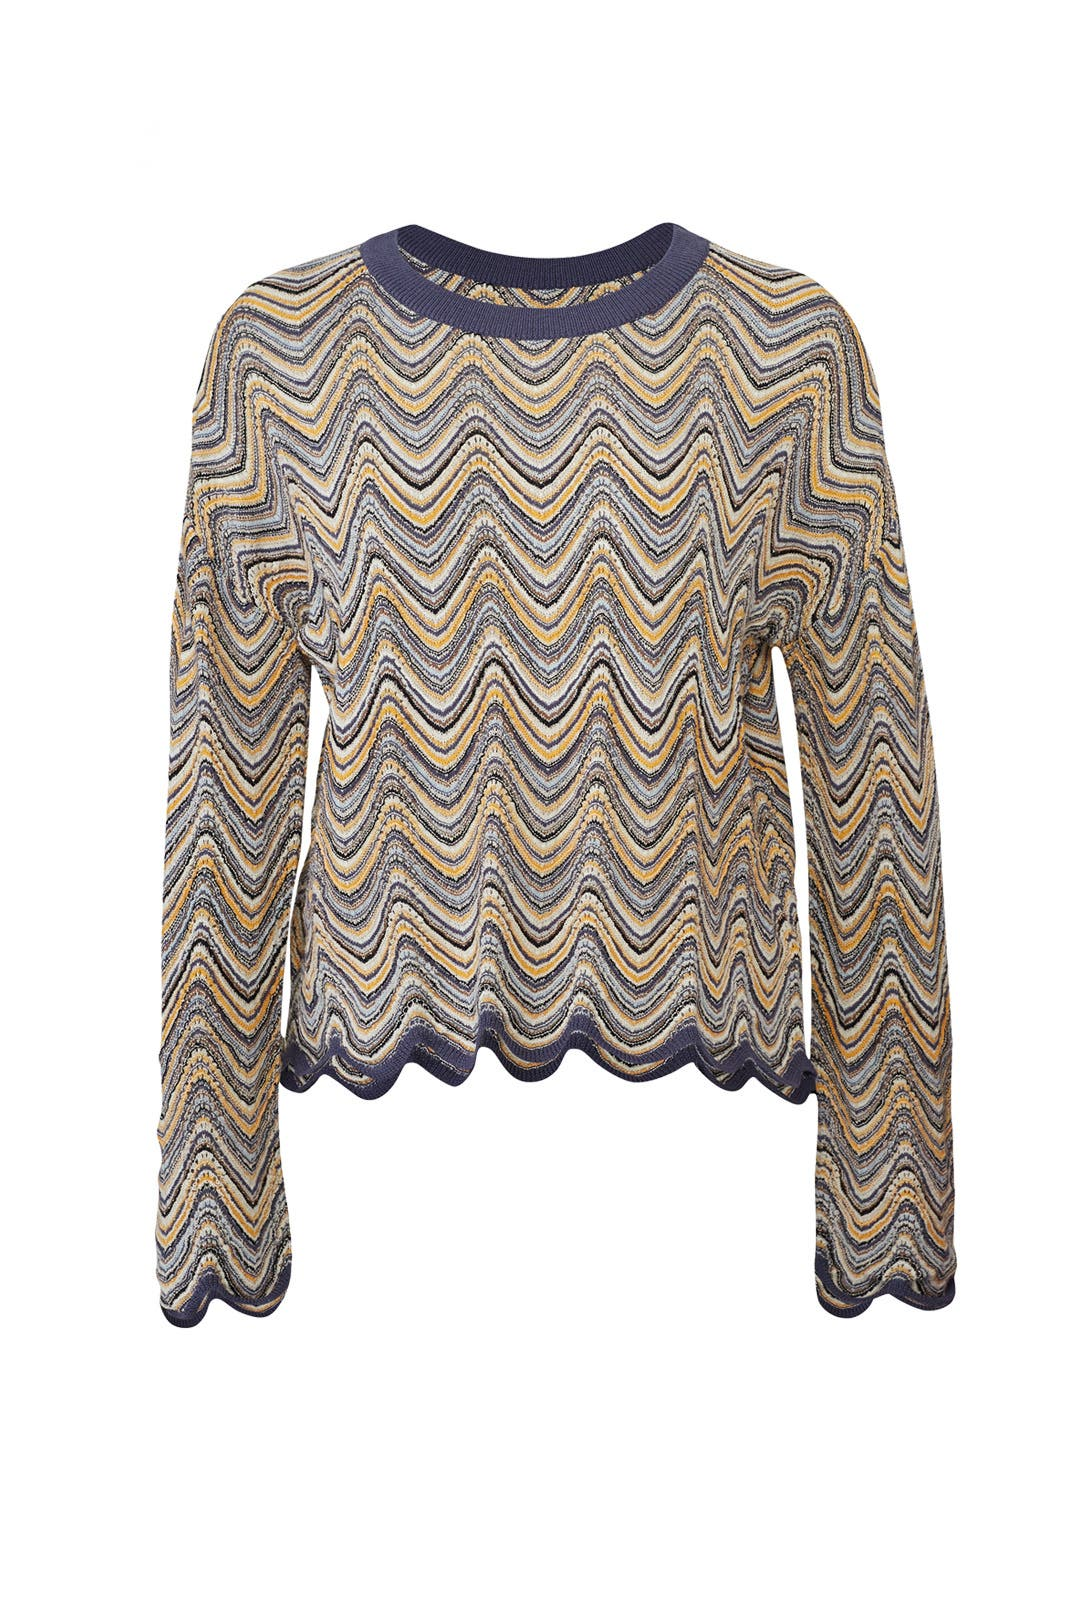 48c87f97 Zig Zag Arlo Sweater by M.i.h. Jeans for $50 | Rent the Runway